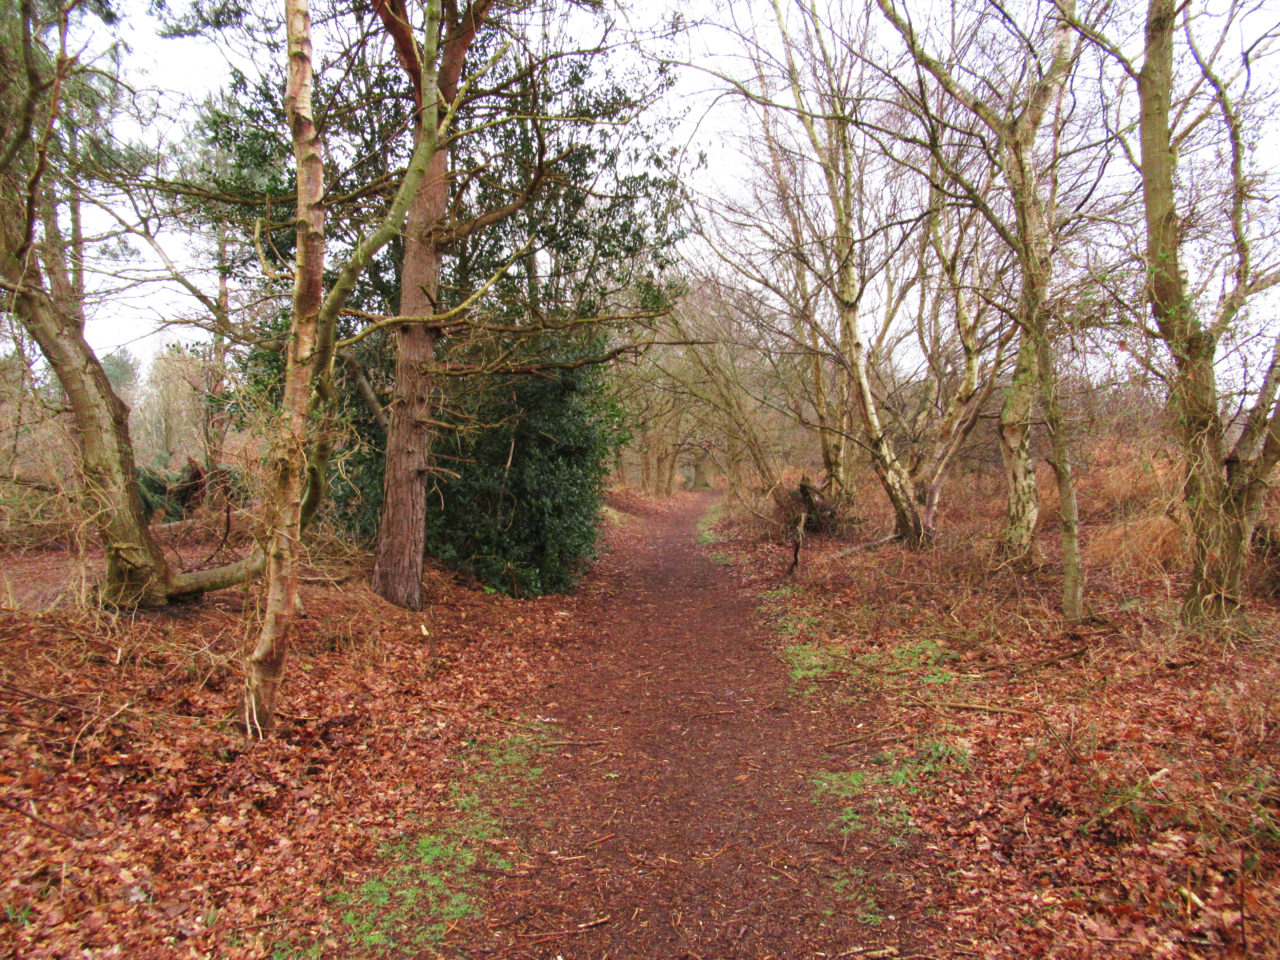 suffolk_coast_trail_pathway